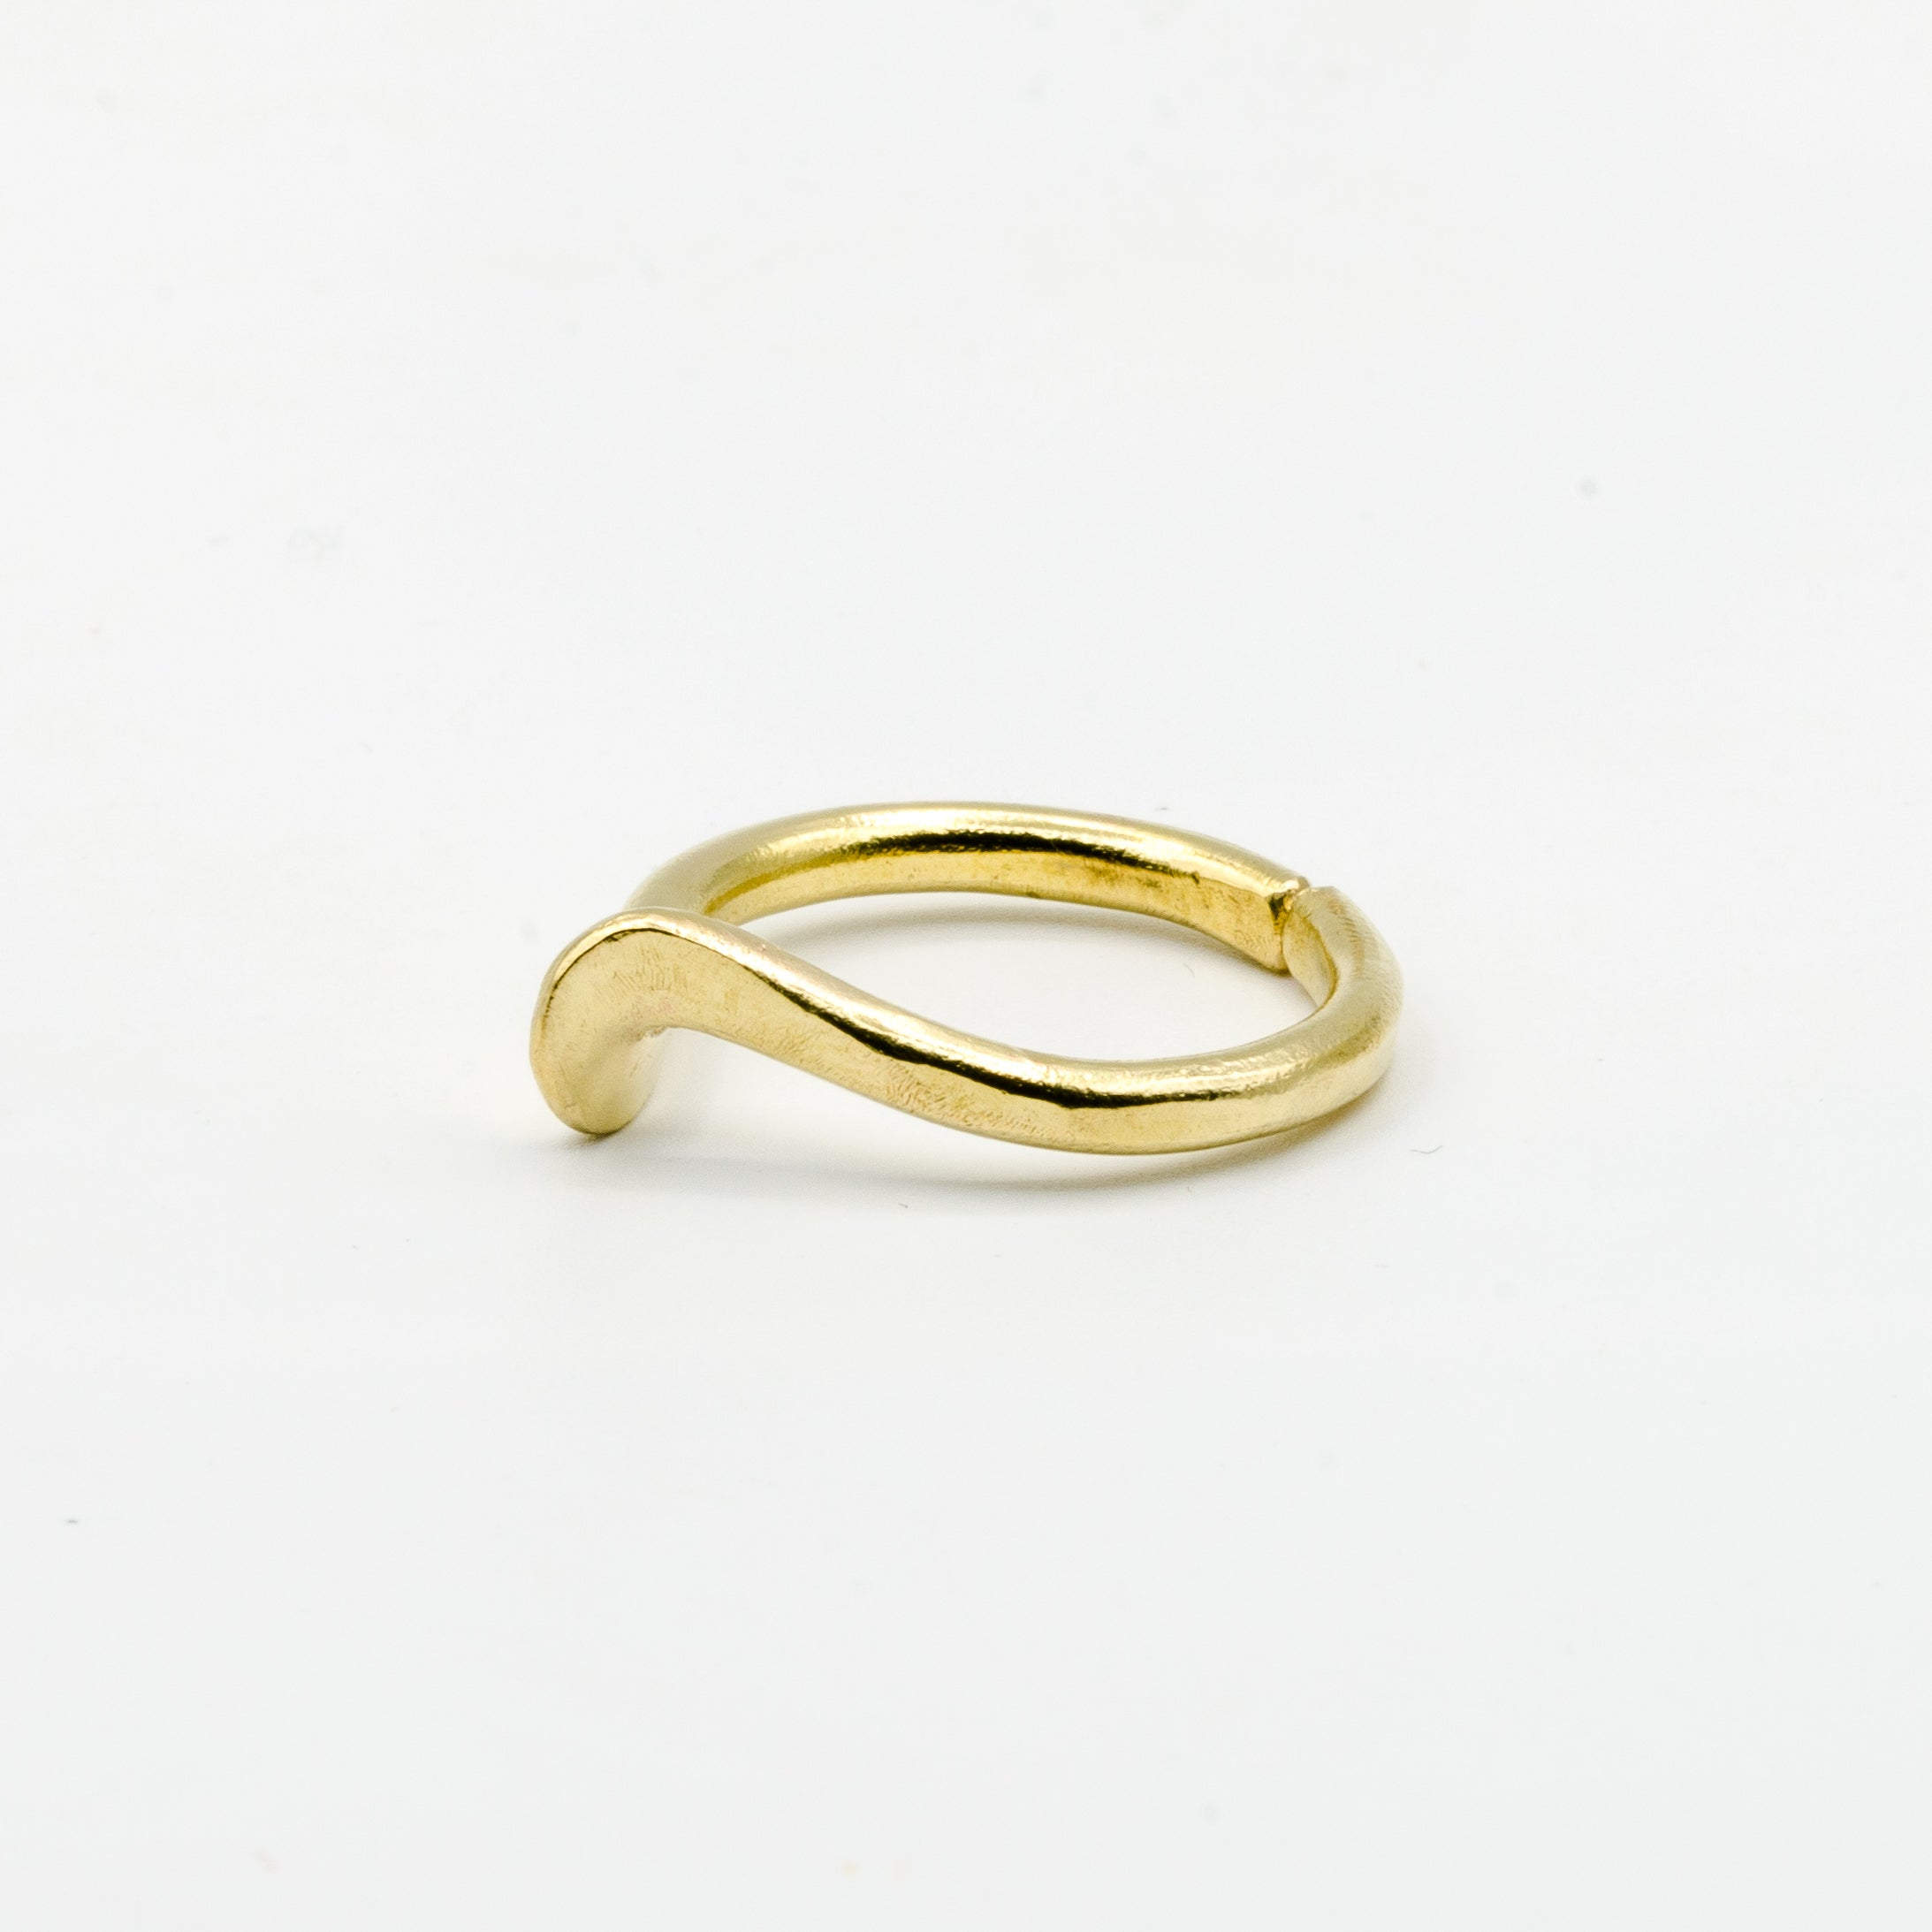 side view of hand forged curved brass ring on white background